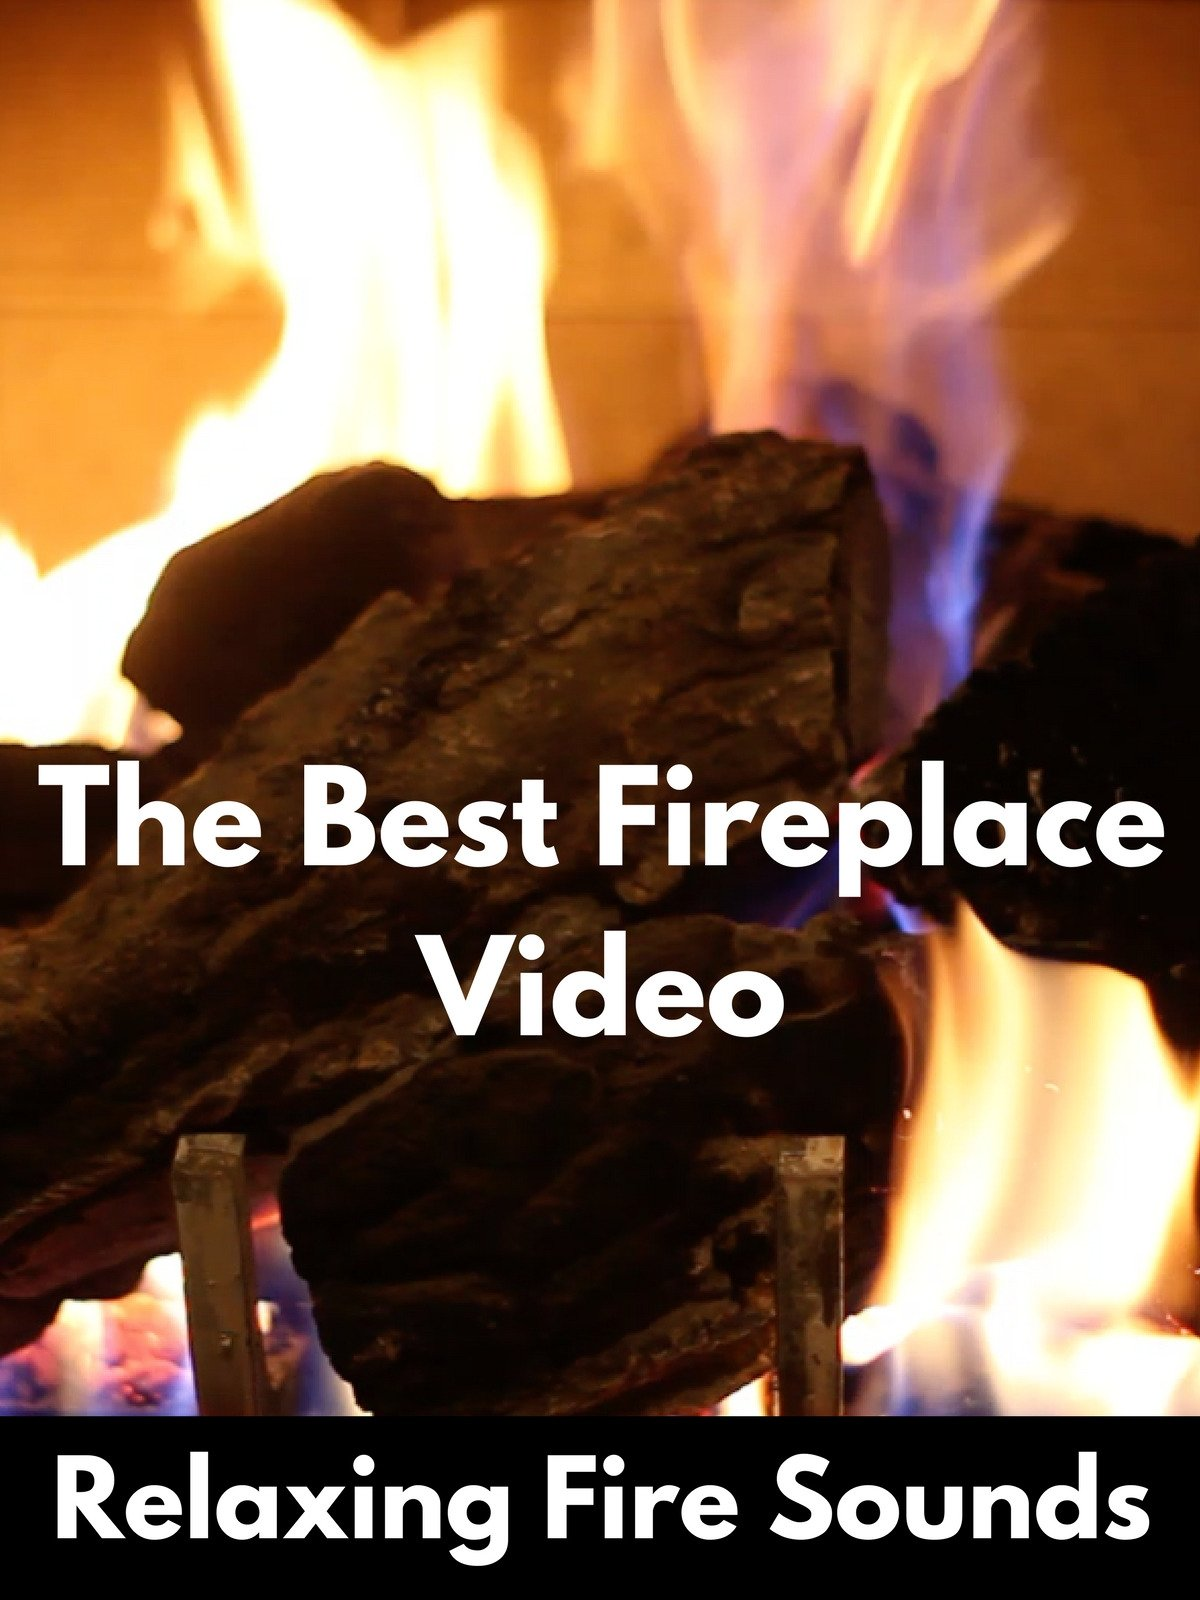 The Best Fireplace Video